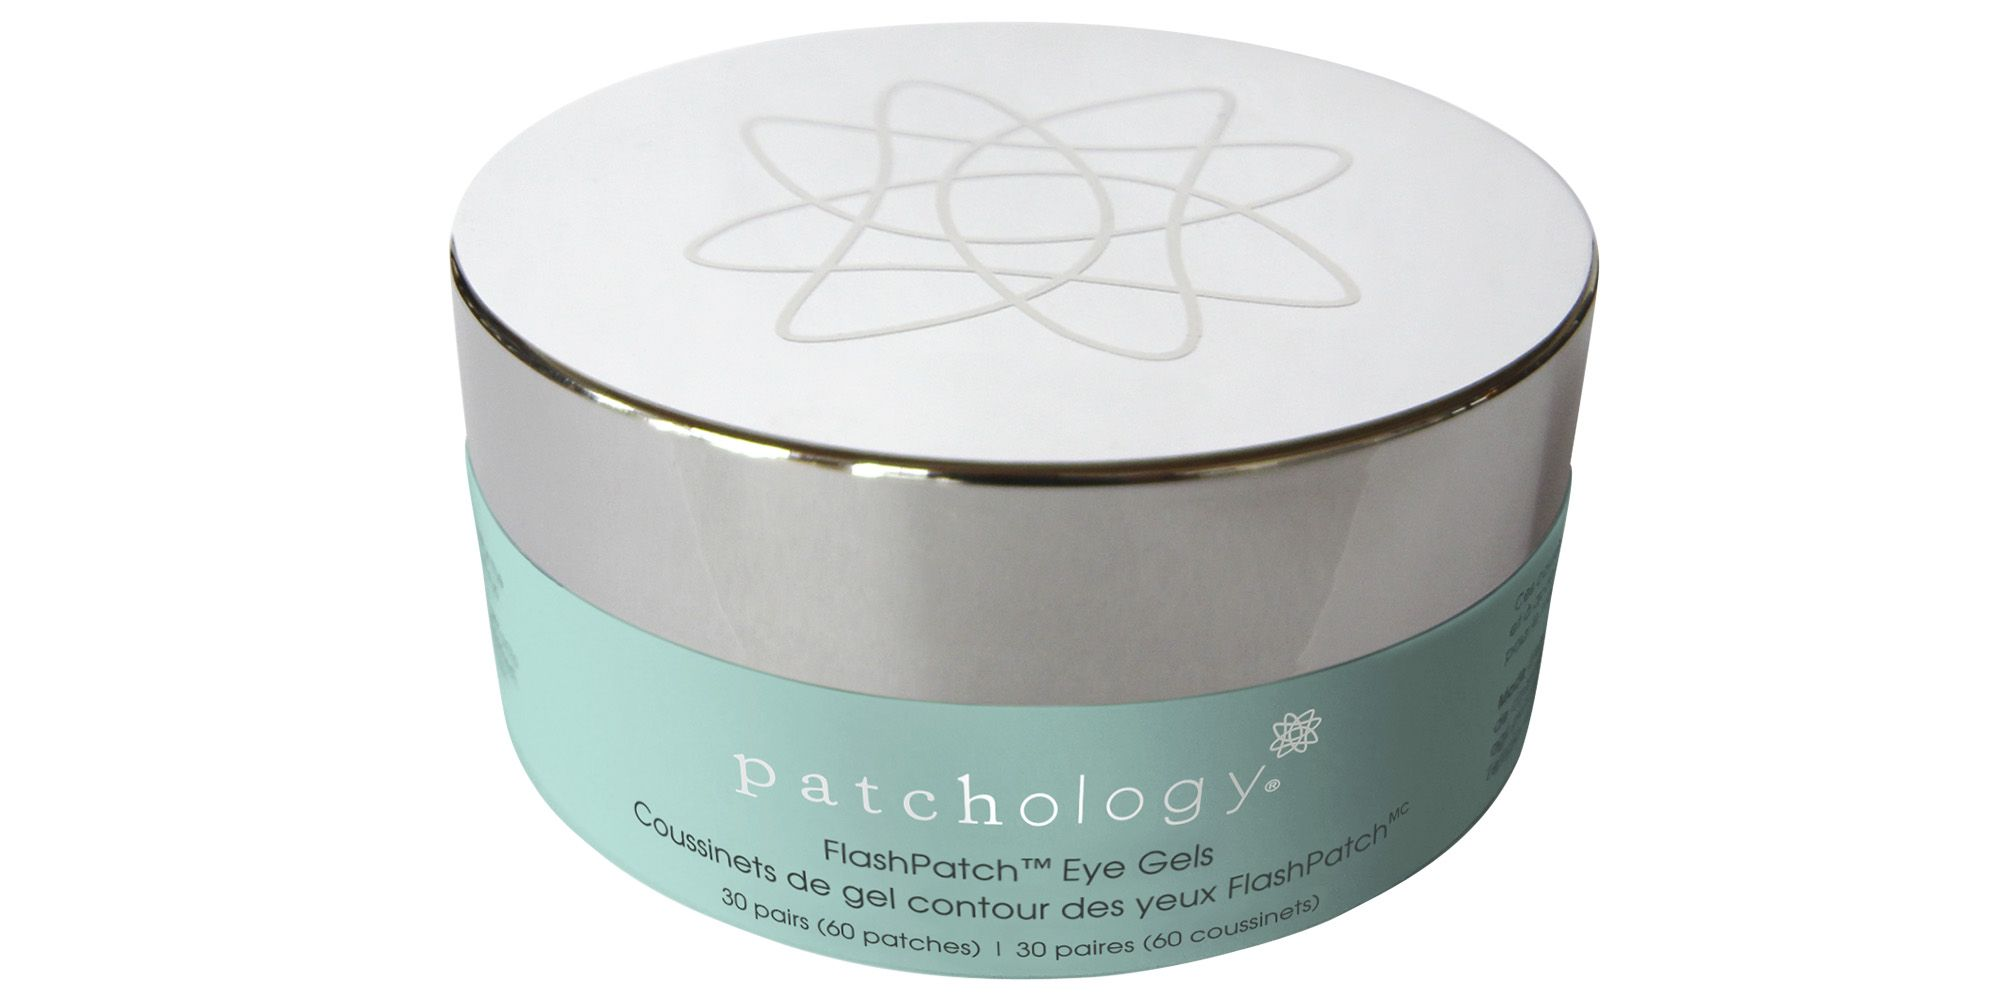 "<p>By drenching skin in moisture, collagen, and caffeine, <a href=""http://www.patchology.com/patchology-flash-patch-eye-gels/"" target=""_blank"">Patchology</a> FlashPatch Eye Gels ($50 for 30 pairs) transform tired peepers into bright, younger-looking eyes.</p>"